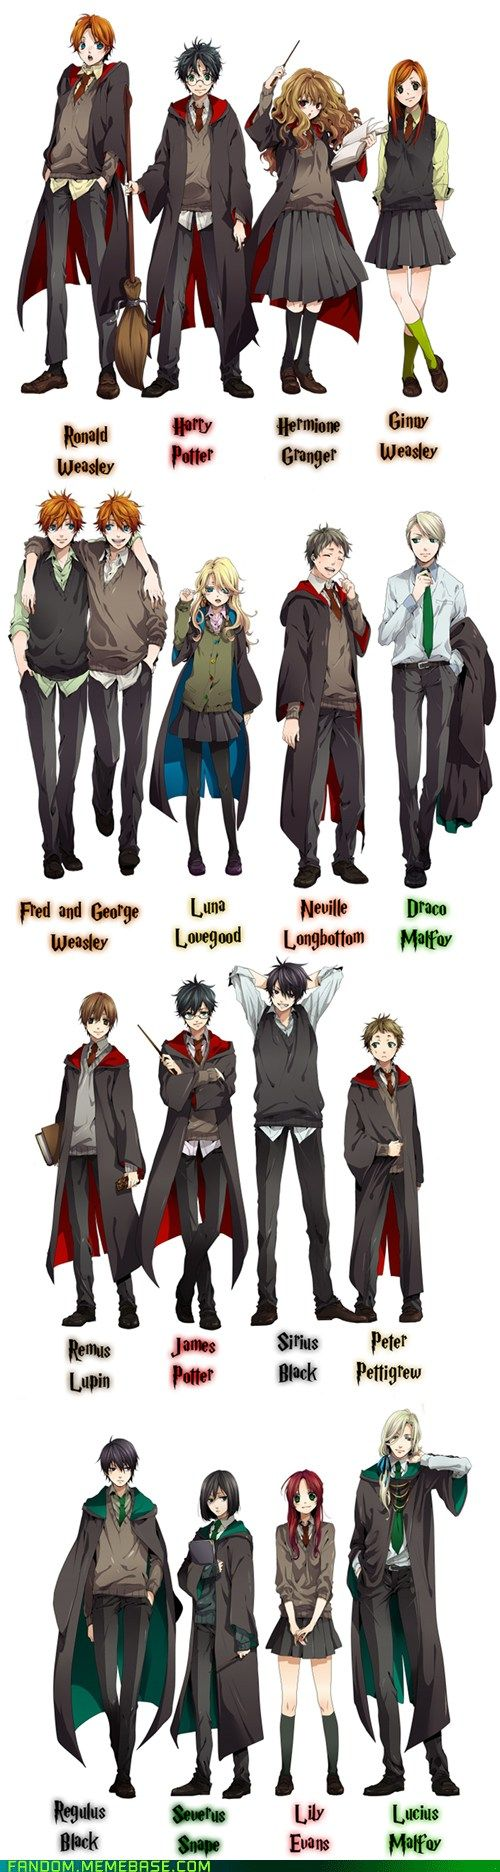 Harry Potter anime! These are amazing!!!! i love how Draco swaggers while standing immobile